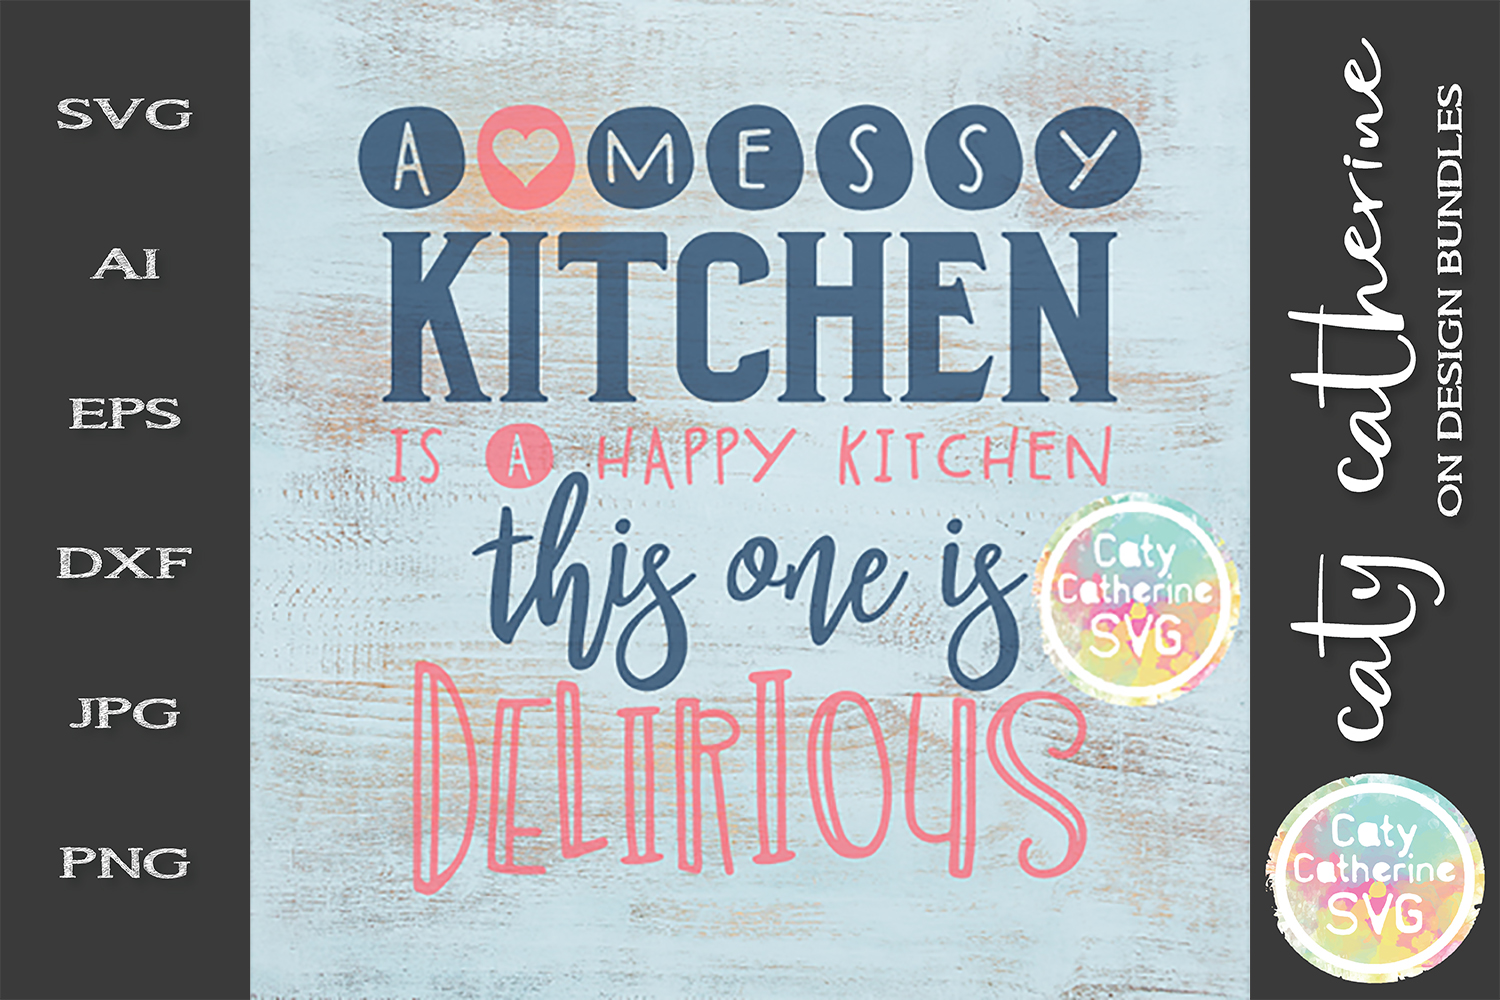 A Merry Kitchen Is A Happy Kitchen This One Is Delirious SVG example image 1